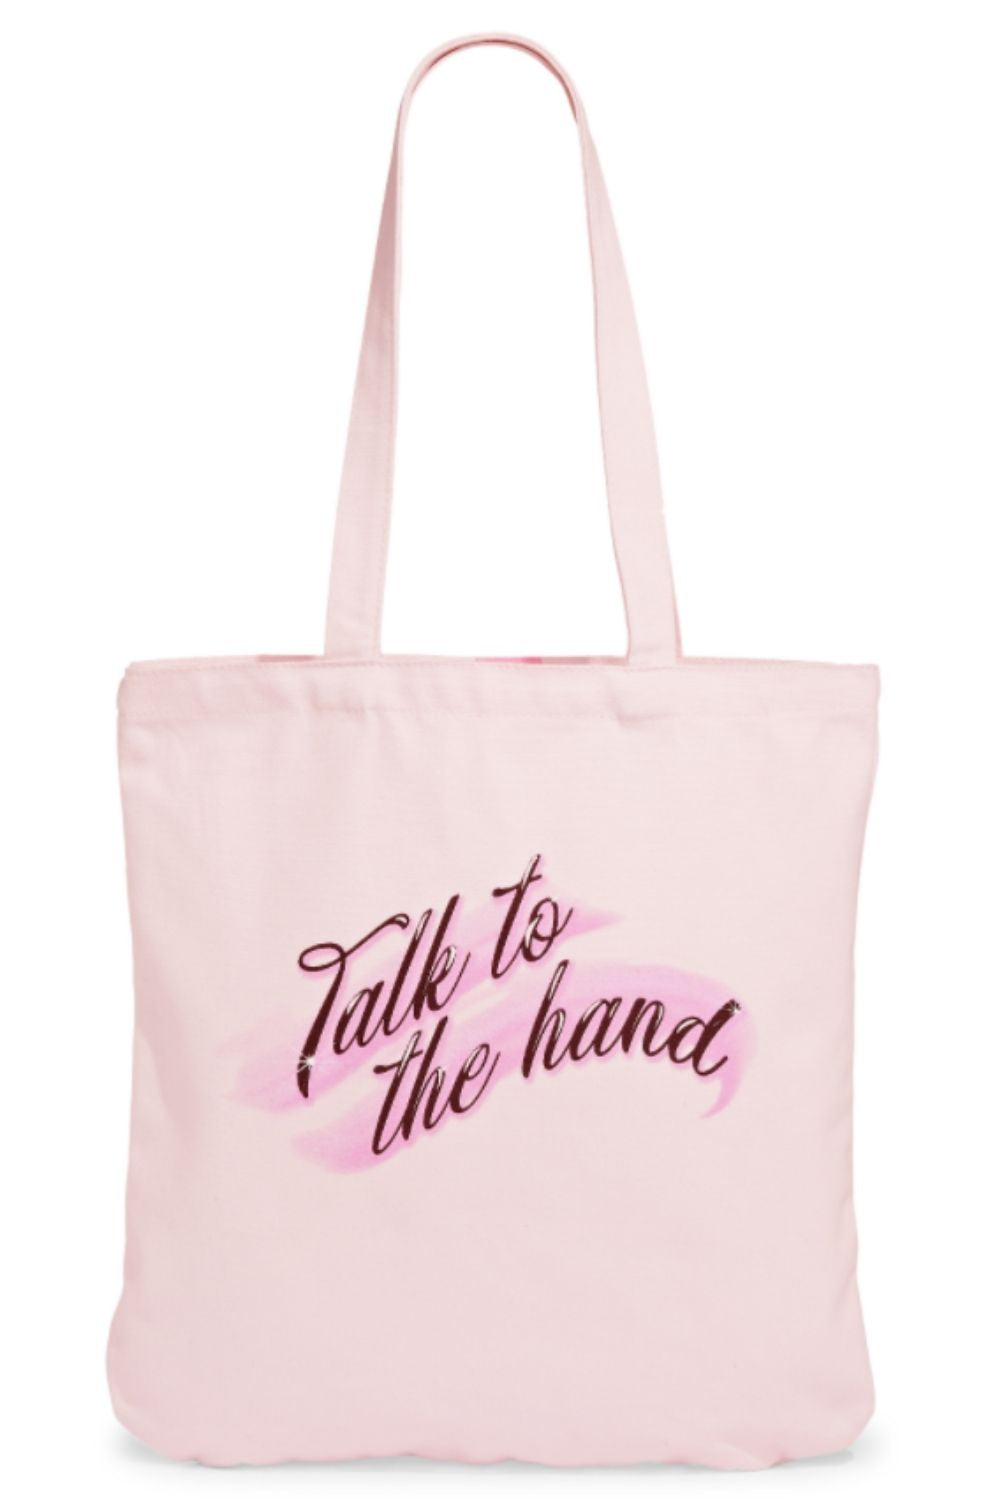 Capsule 98 X Randi Bergman Talk to the Hand Cotton Canvas Pink Tote Bag